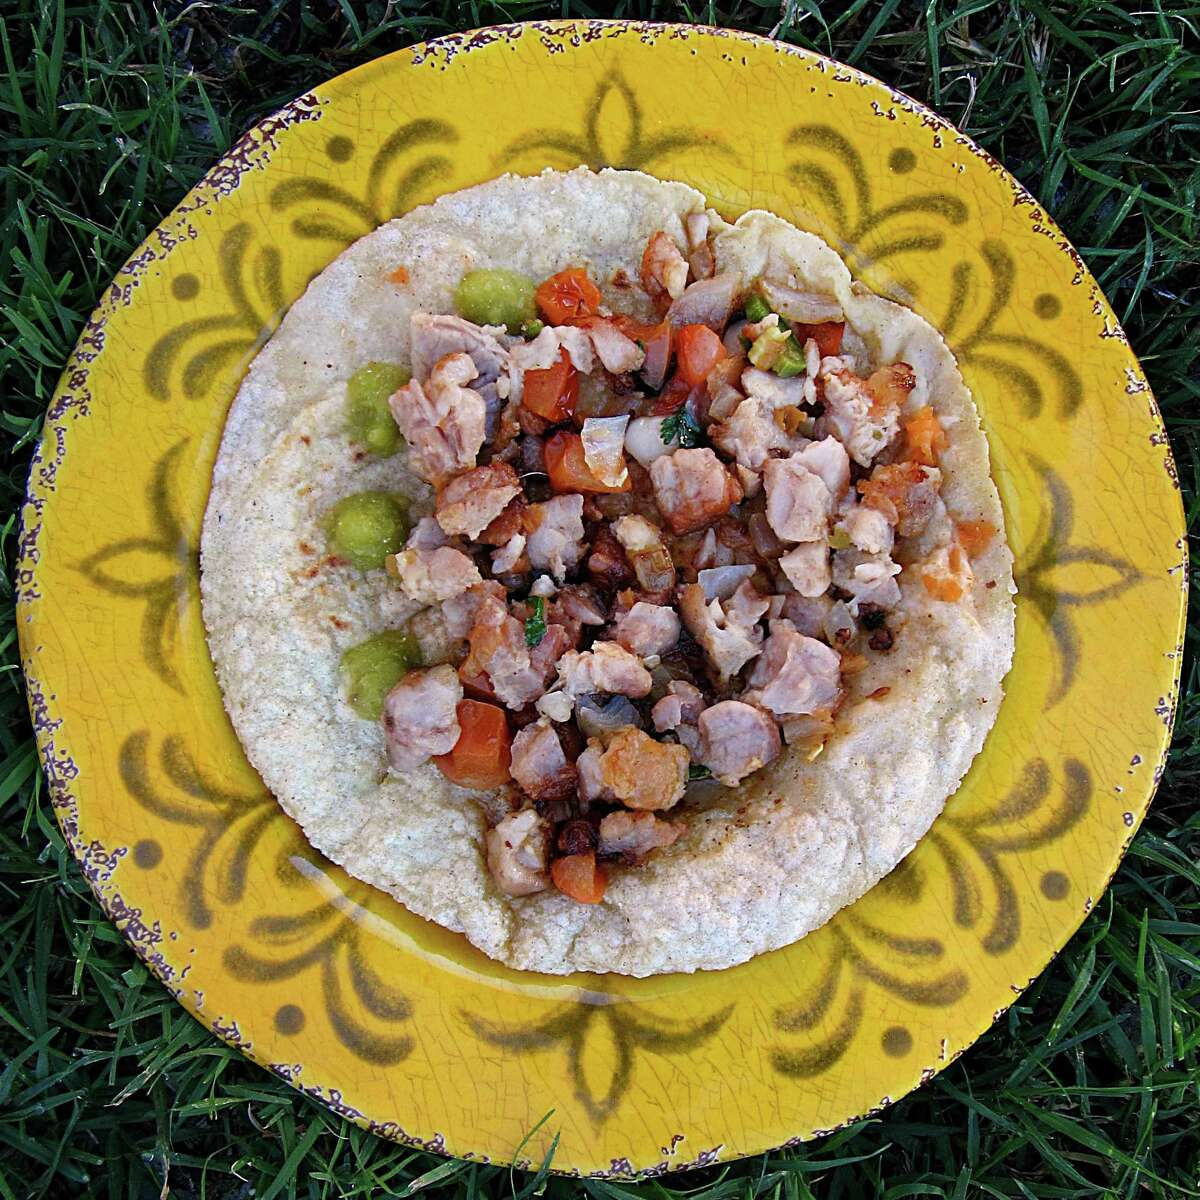 Taco of the Week: Mollejas (sweetbreads) taco on a handmade corn tortilla from Mittman Fine Foods.